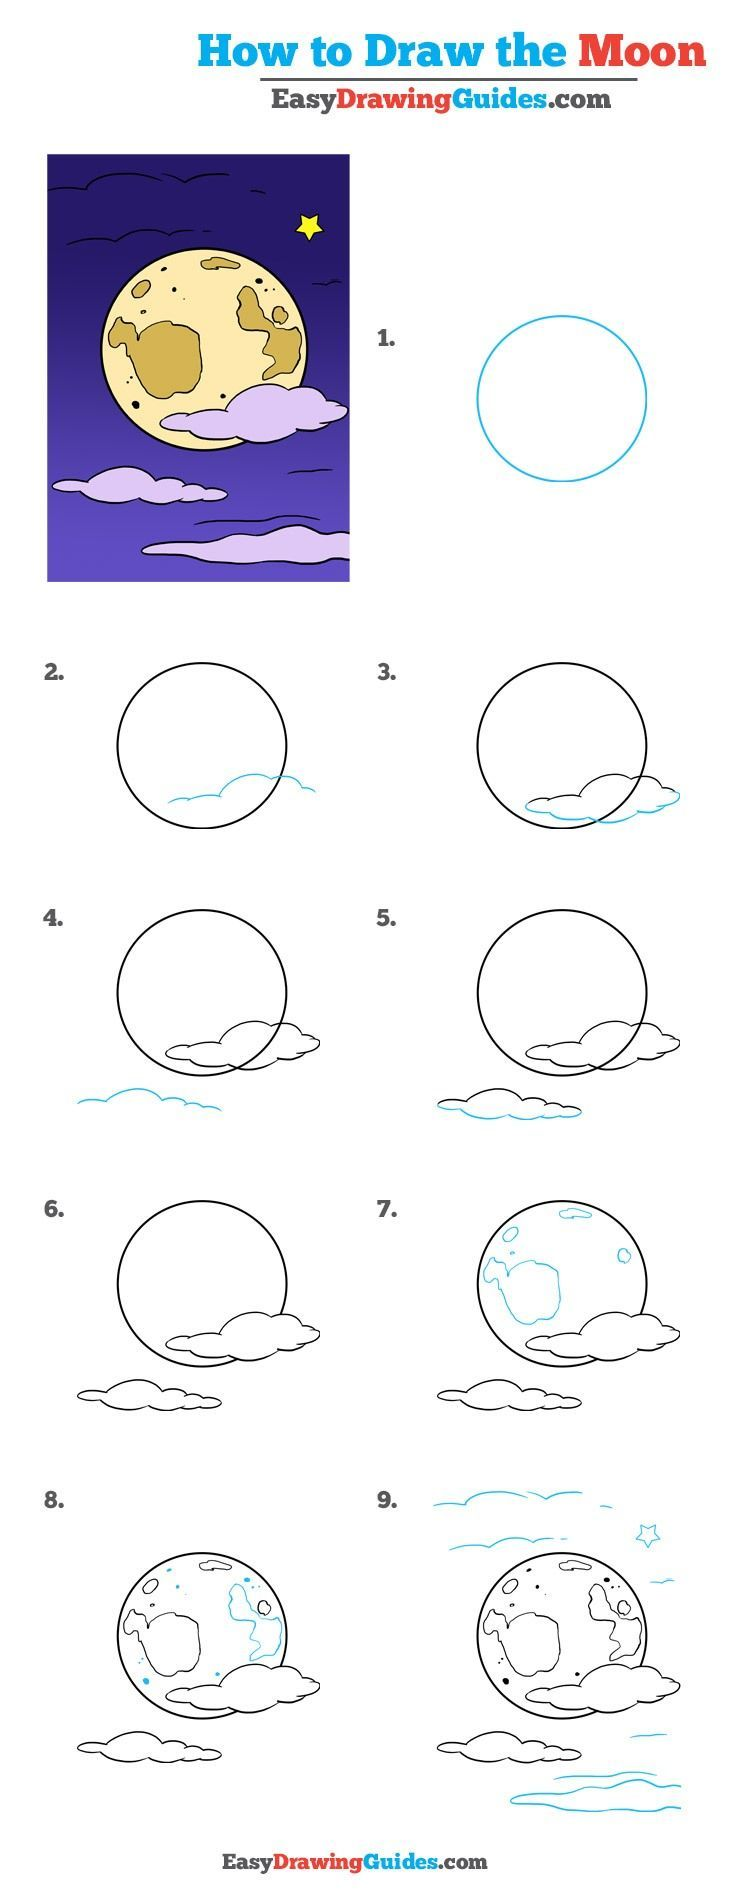 Learn How to Draw Moon: Easy Step-by-Step Drawing Tutorial for Kids and Beginners. #Moon #drawingtutorial #easydrawing See the full tutorial at https://easydrawingguides.com/how-to-draw-the-moon-really-easy-drawing-tutorial/.